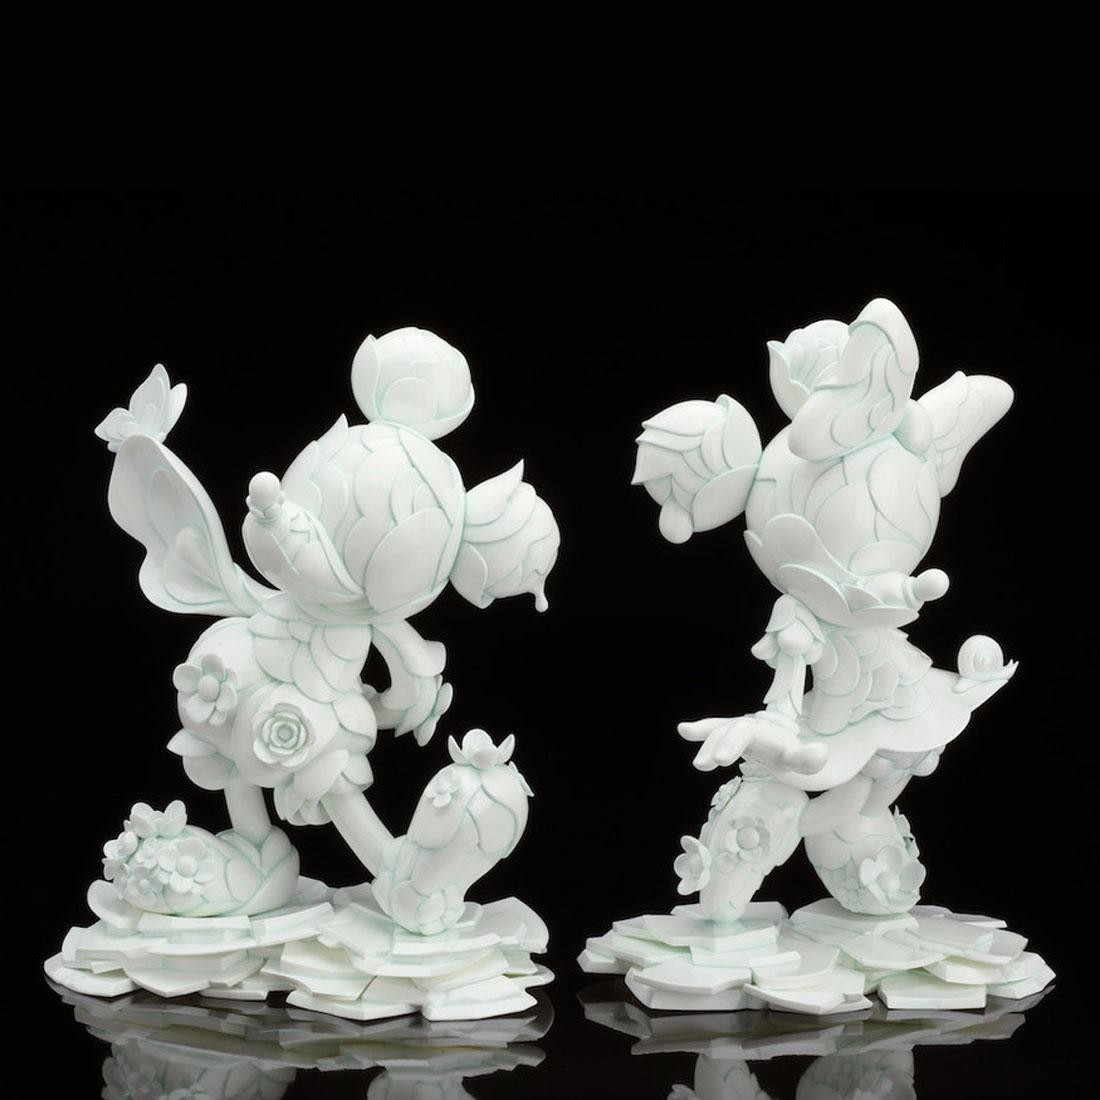 James Jean x Good Smile Company Mickey Mouse And Minnie Mouse 90th Anniversary Edition Sculpture Set (white)